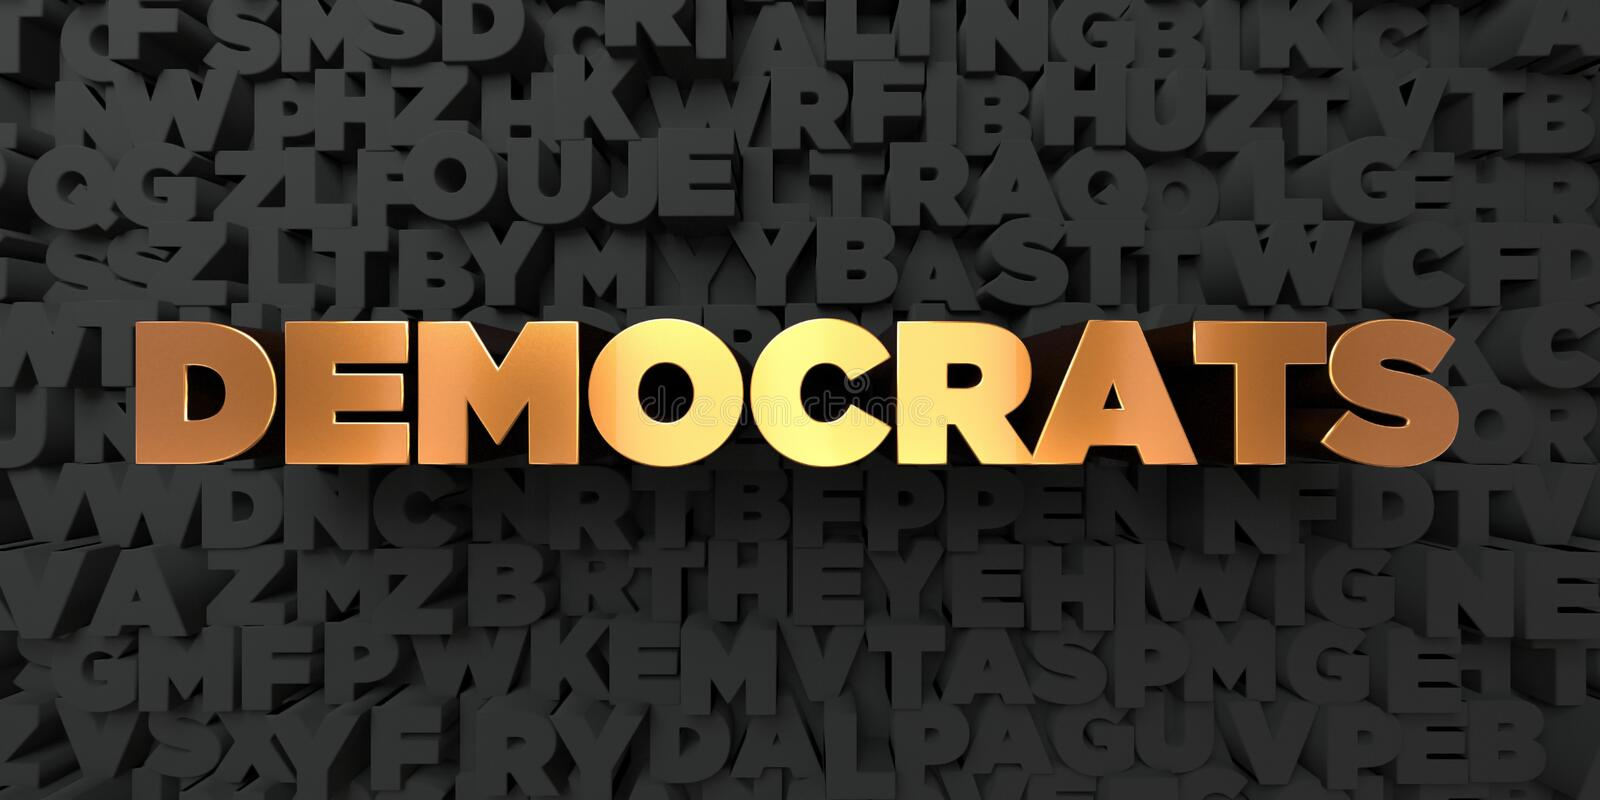 Democrats - Gold text on black background - 3D rendered royalty free stock picture. This image can be used for an online website banner ad or a print postcard stock illustration